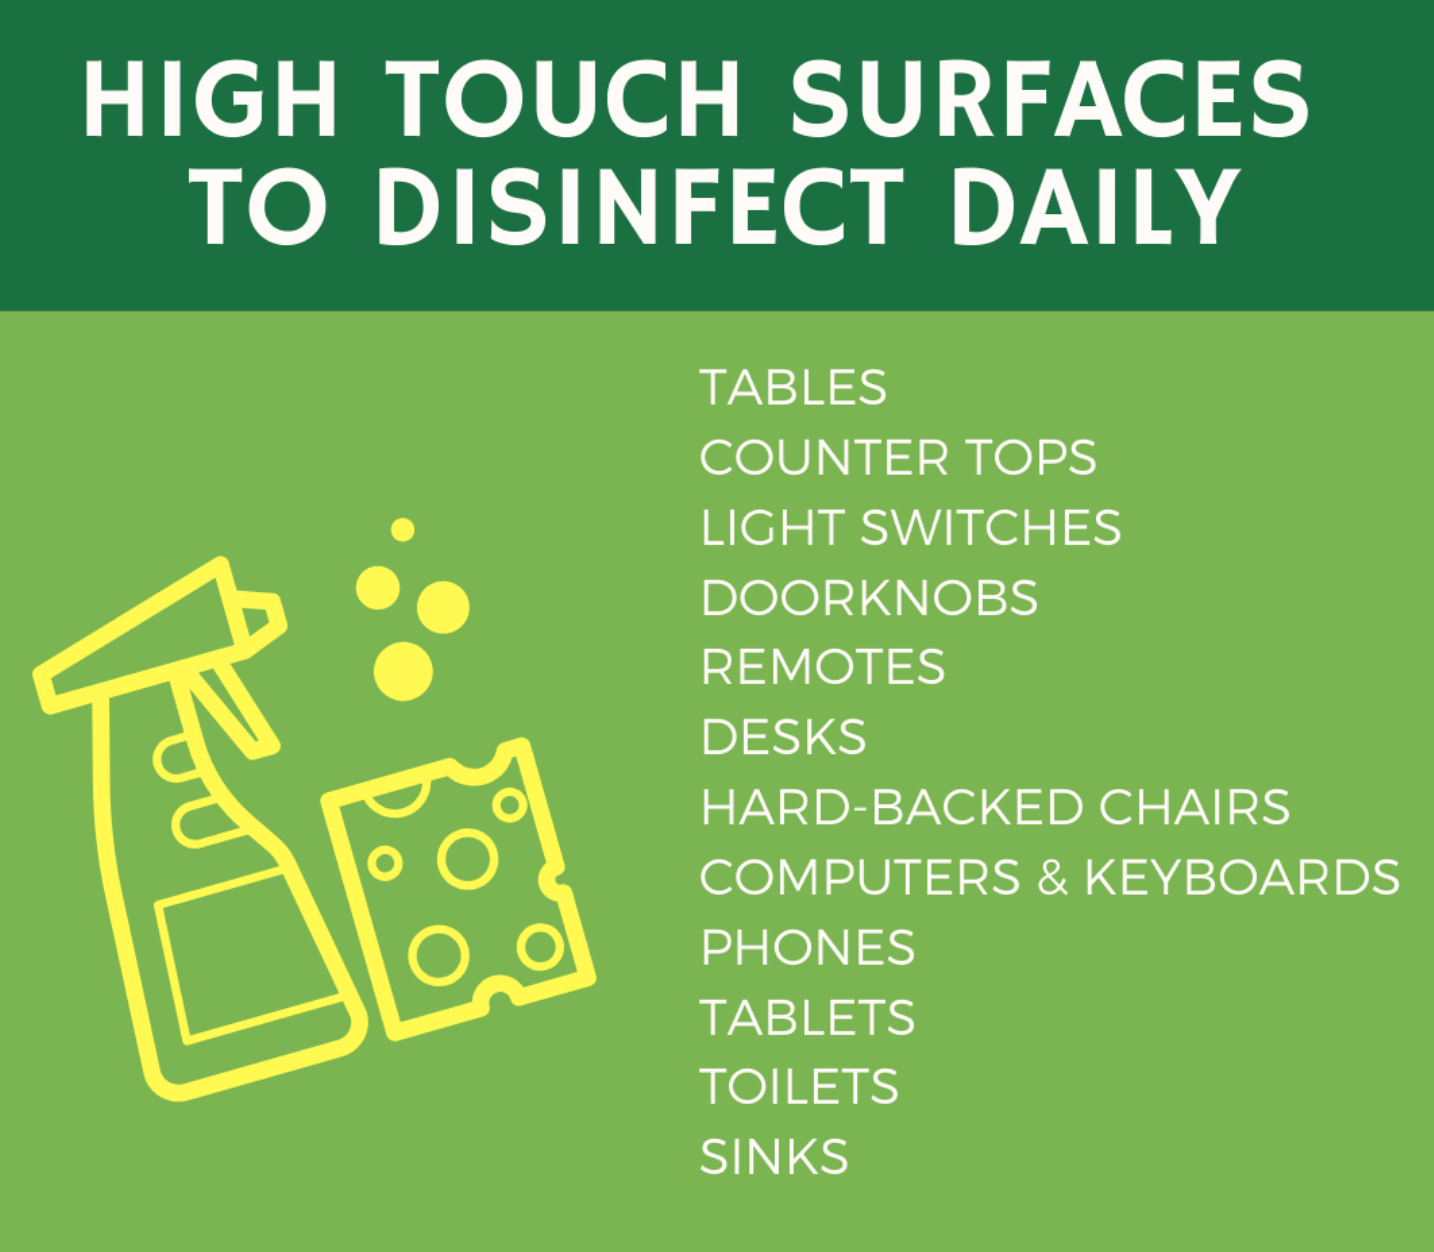 disinfect surfaces at home